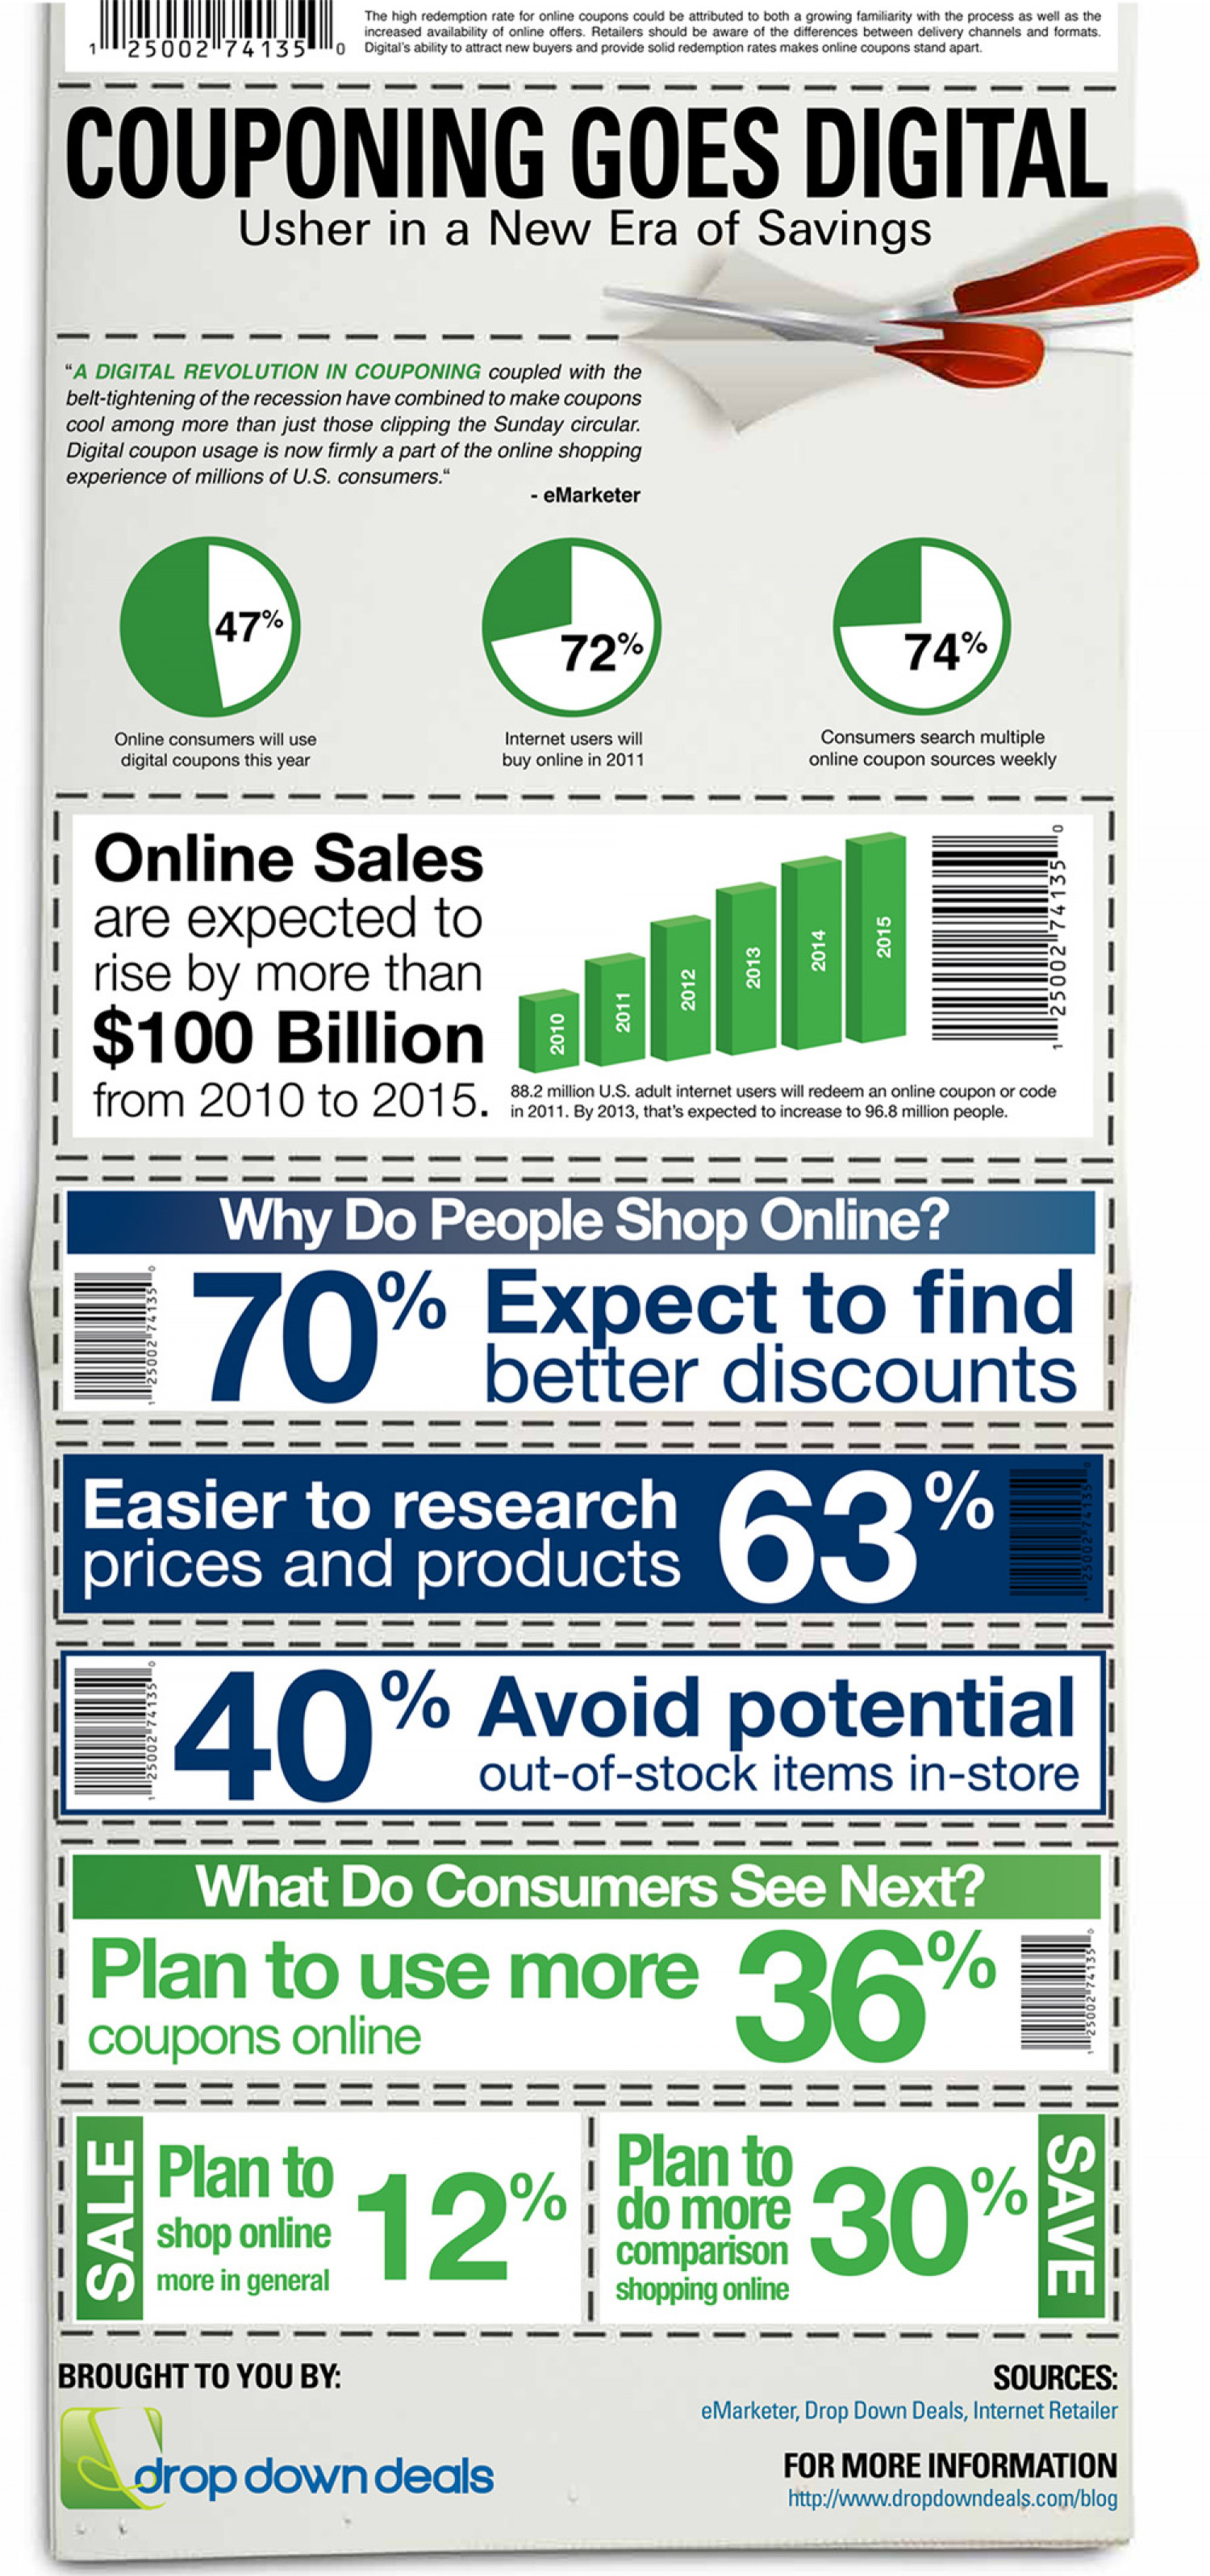 Couponing Goes Digital 2011 Infographic